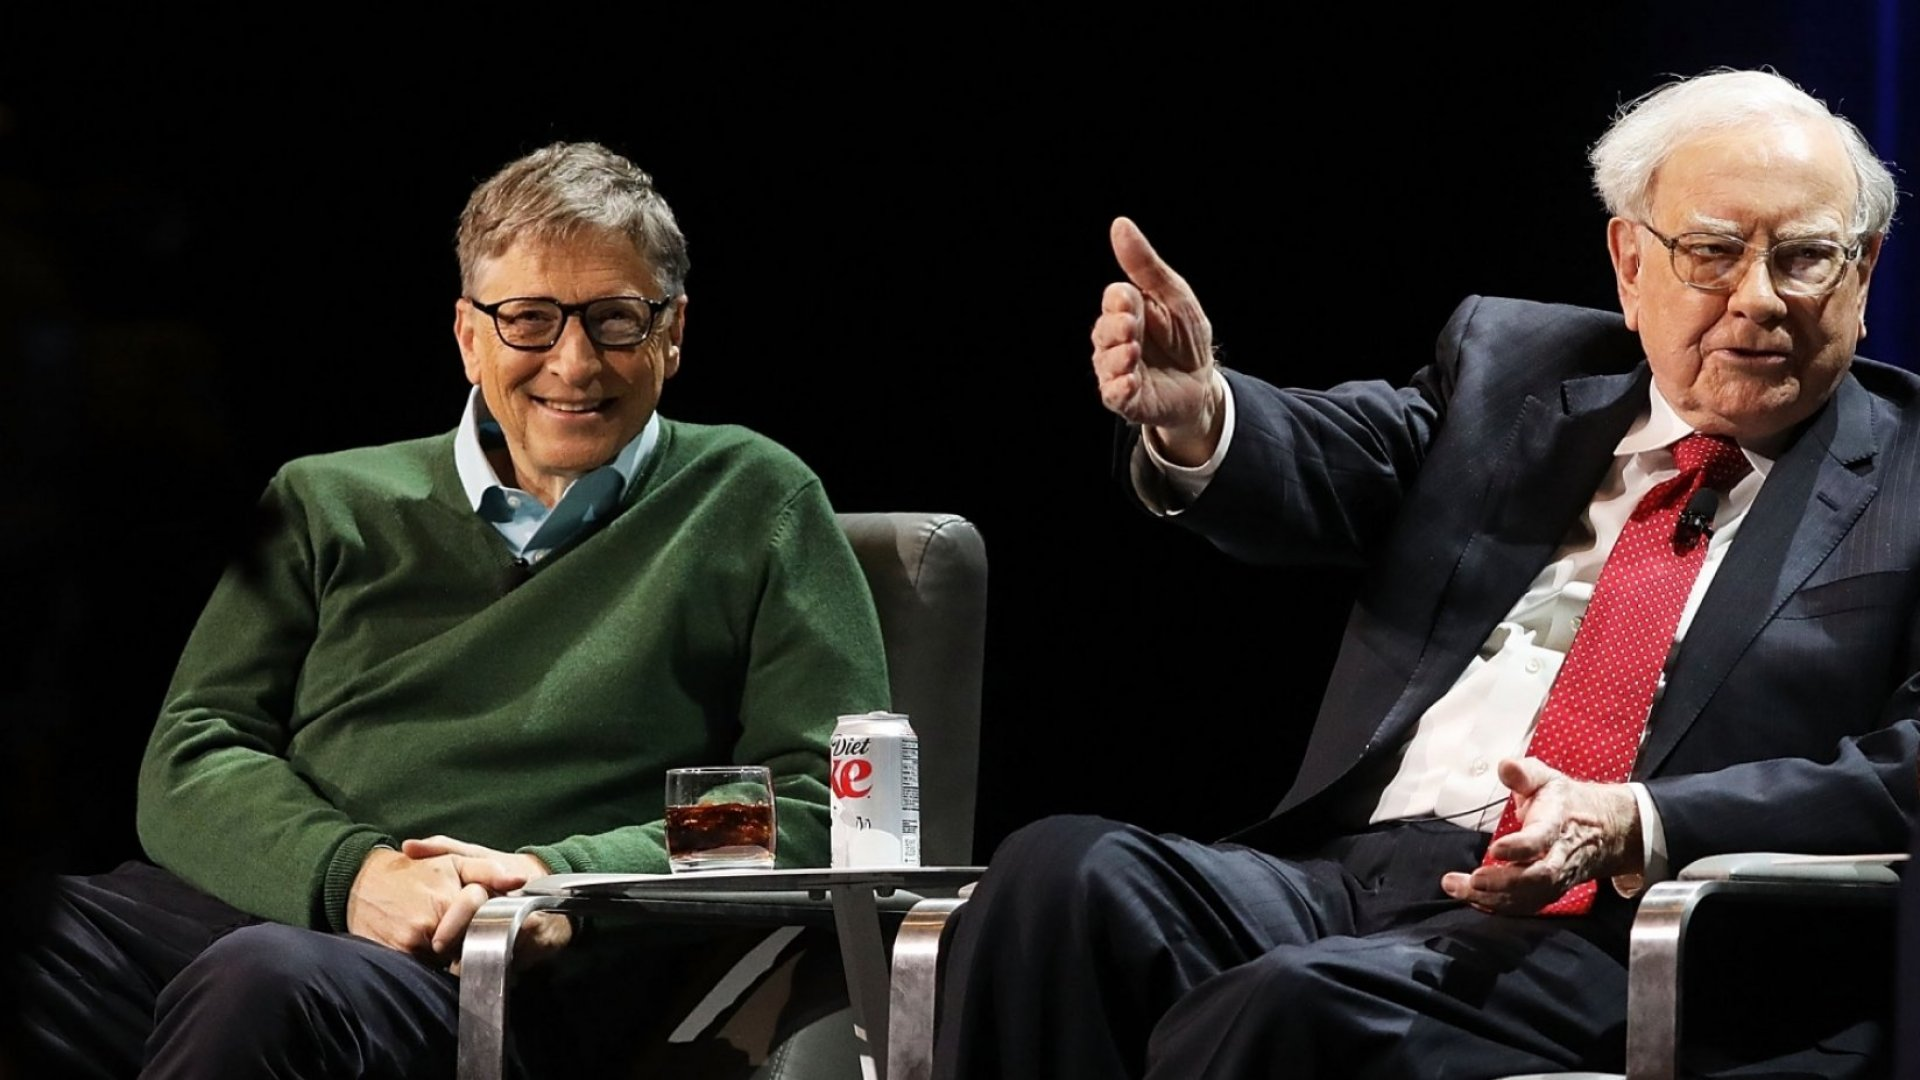 Bill Gates, Warren Buffett, and Almost All Billionaires Do These 6 Key Things